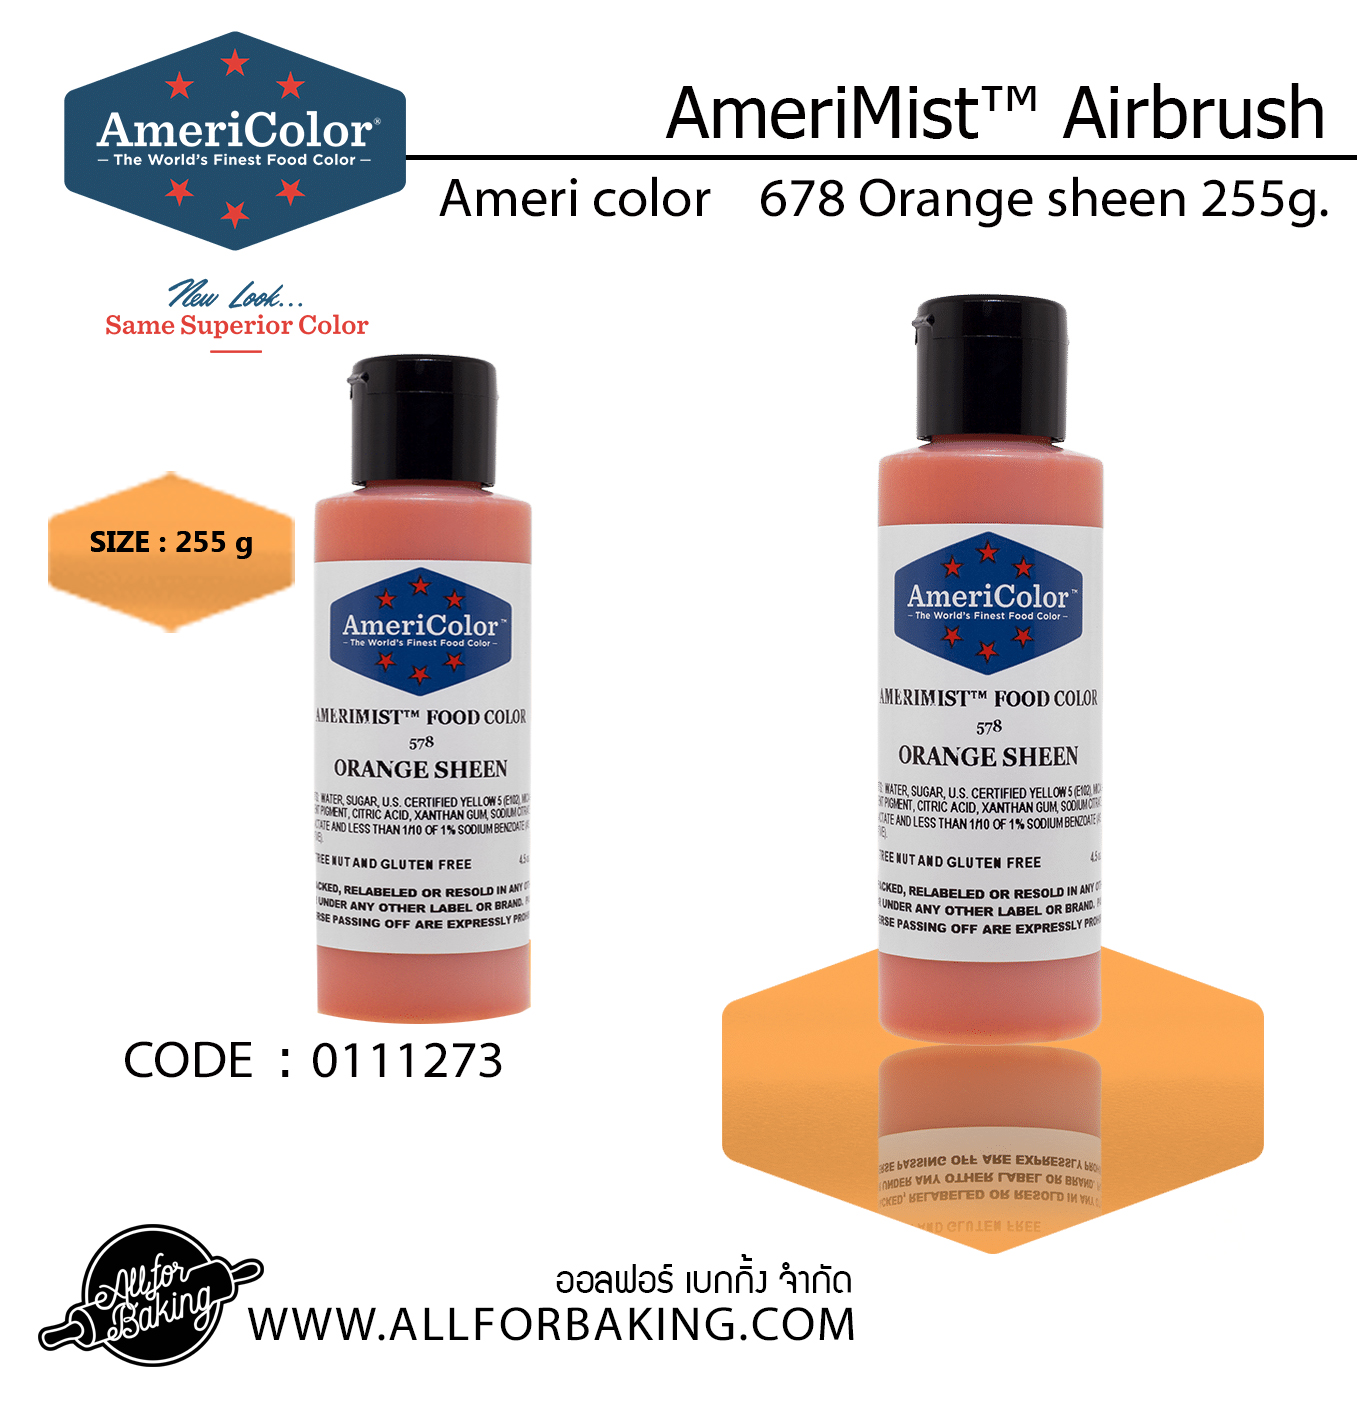 Ameri color 678 Orange sheen 255g.(255 g)